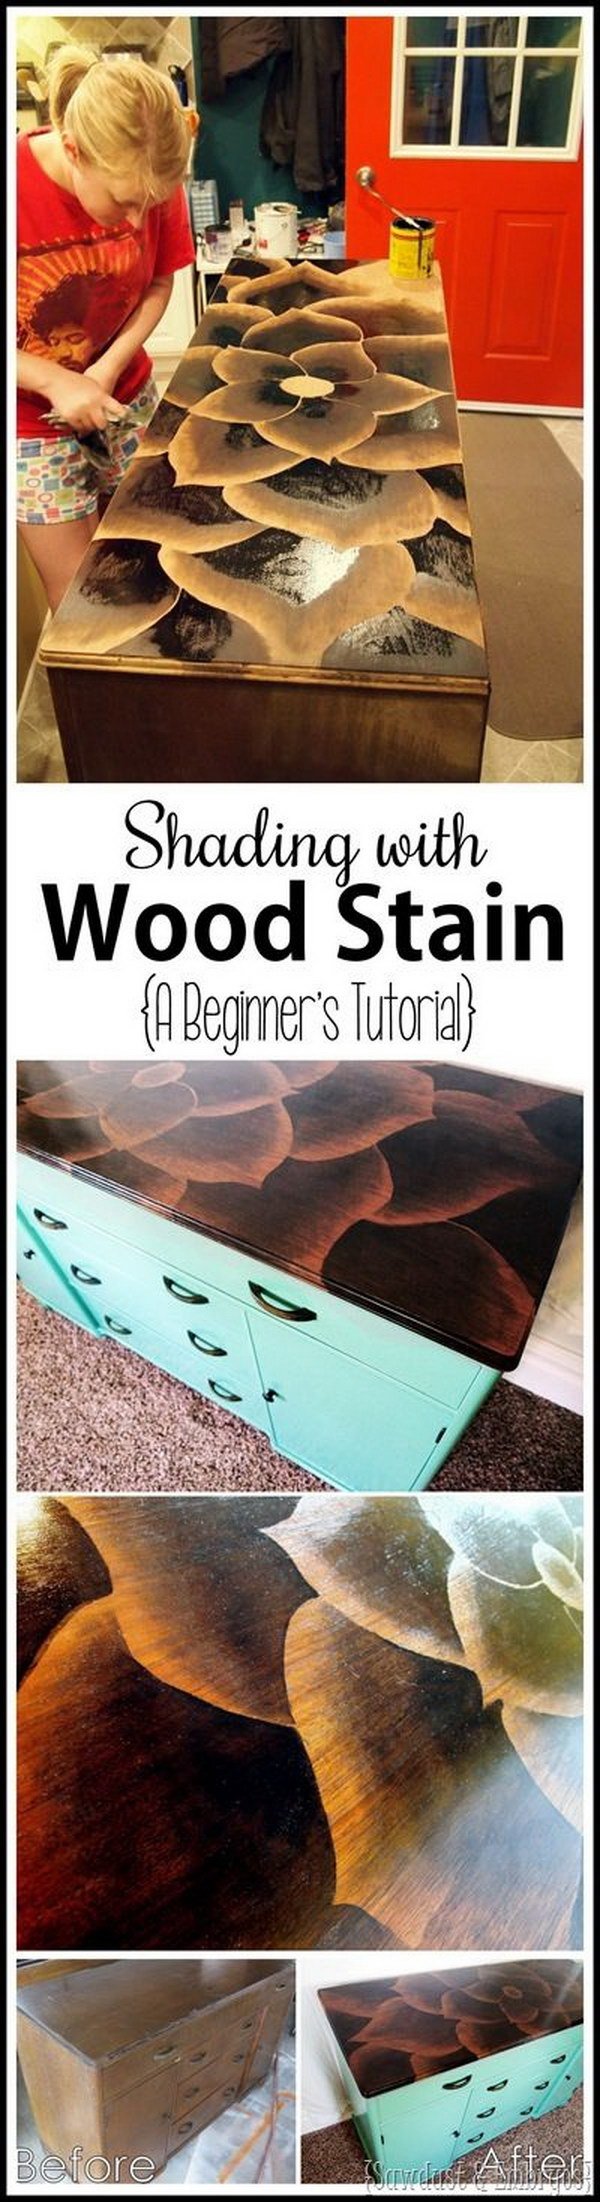 Using Stain To Make Artwork on Furniture.